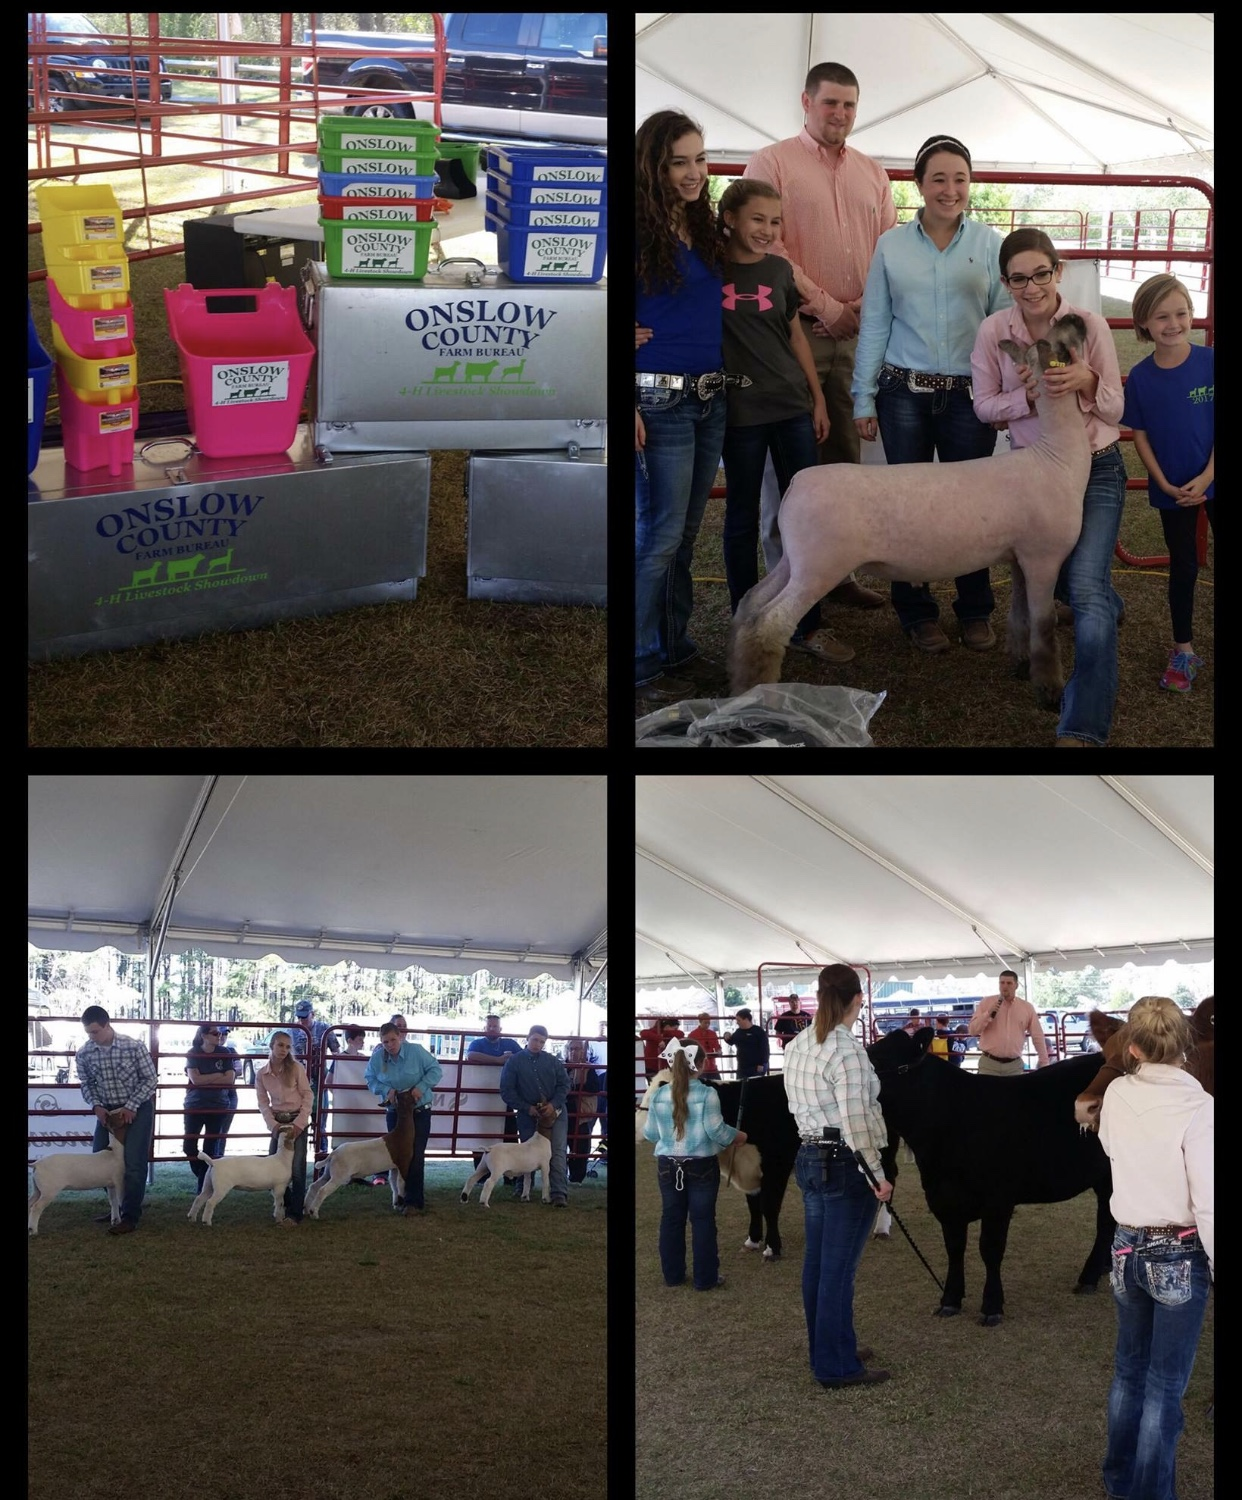 Image collage of livestock show